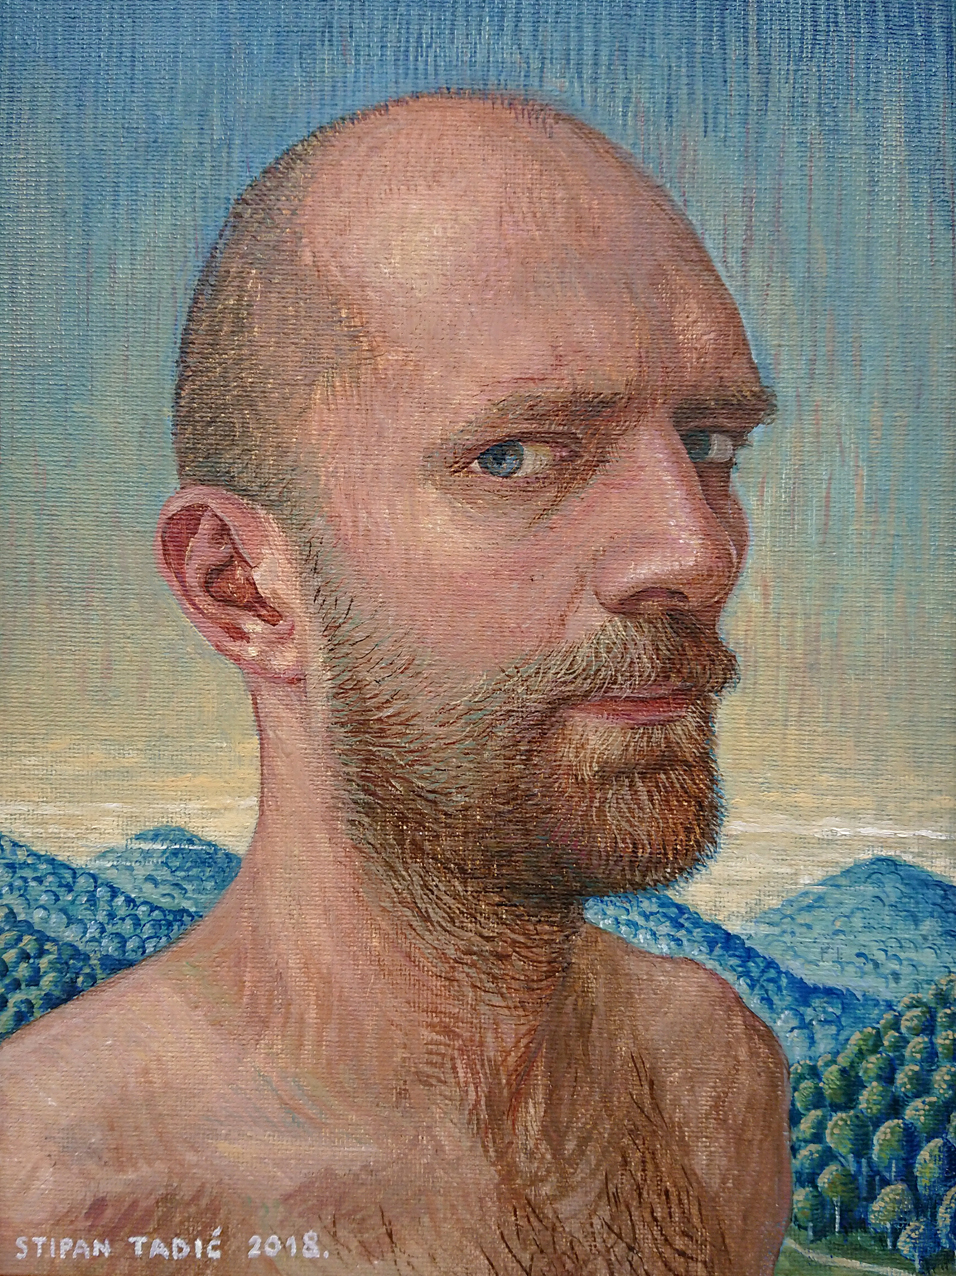 Stipan Tadić,portrait (artist #2), oil on canvas on wood, 24 x 18 cm